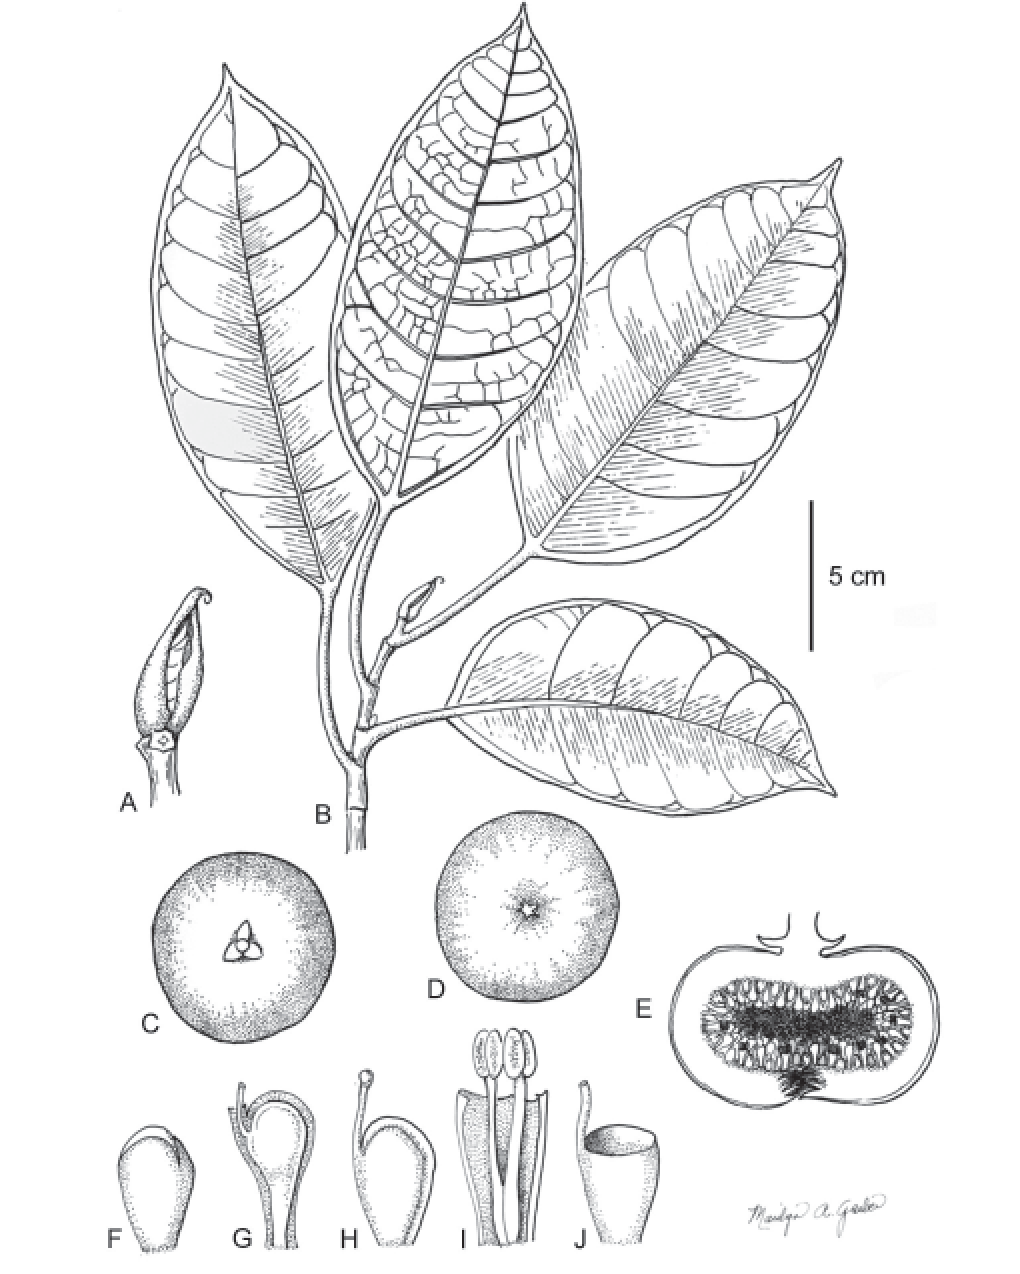 A black line drawing of Ficus umbae